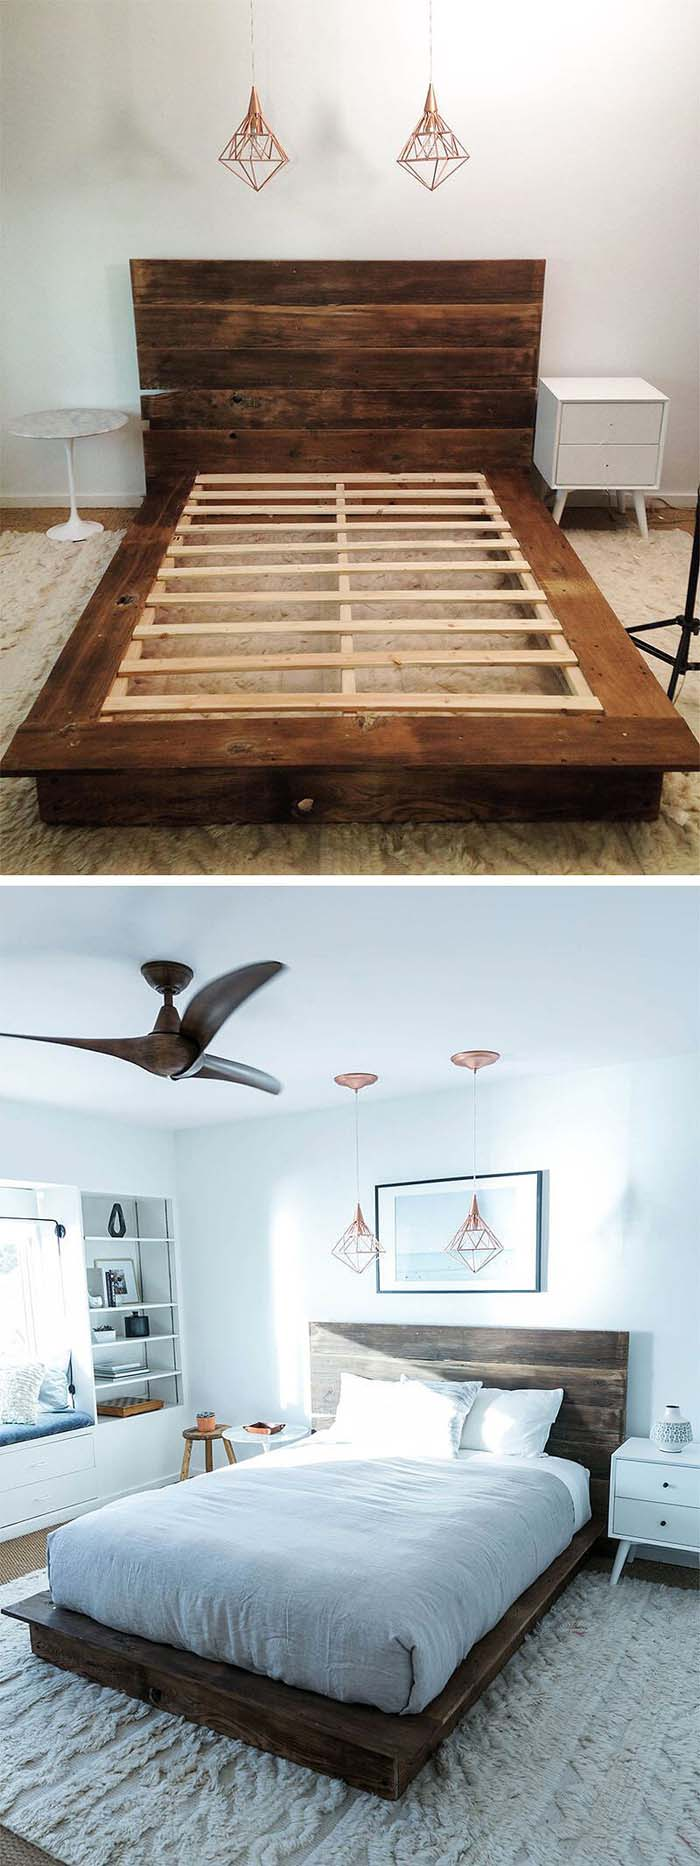 DIY Reclaimed Wood Platform Bed #reclaimed #wood #projects #decorhomeideas